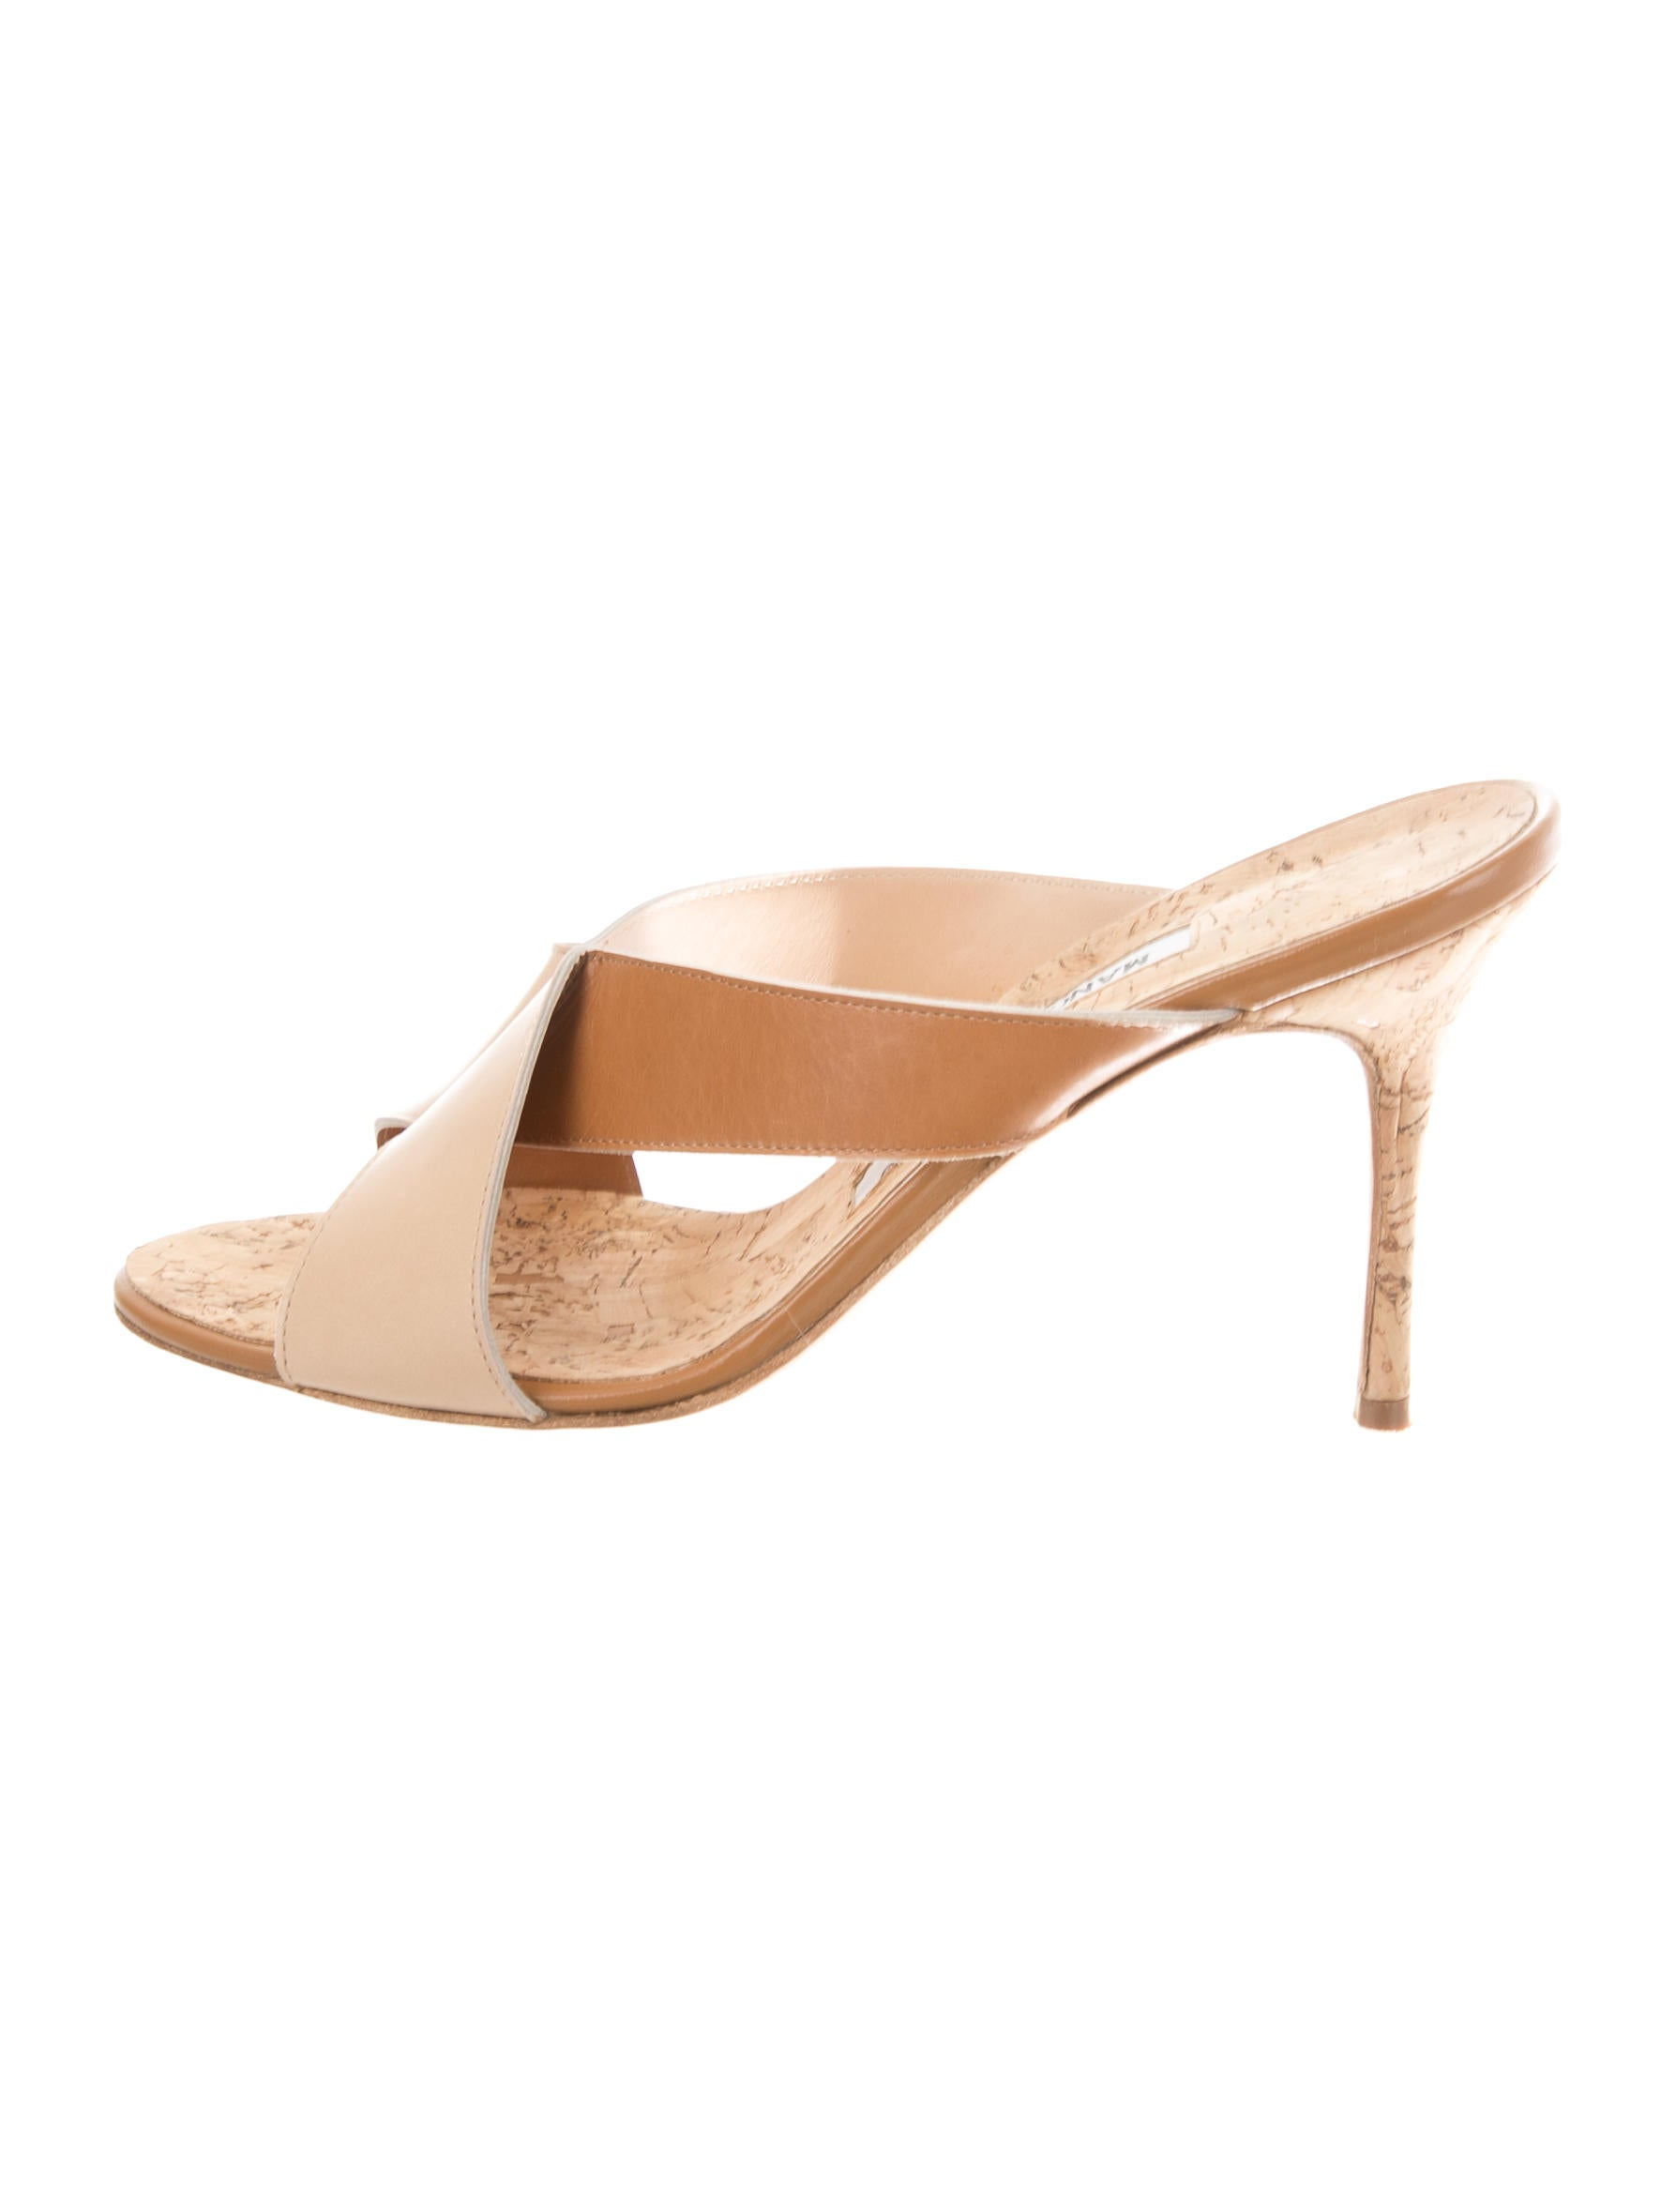 Manolo Blahnik Crossover Slide Sandals buy authentic online shop offer sale online latest collections online clearance brand new unisex get to buy cheap online KHiSPy